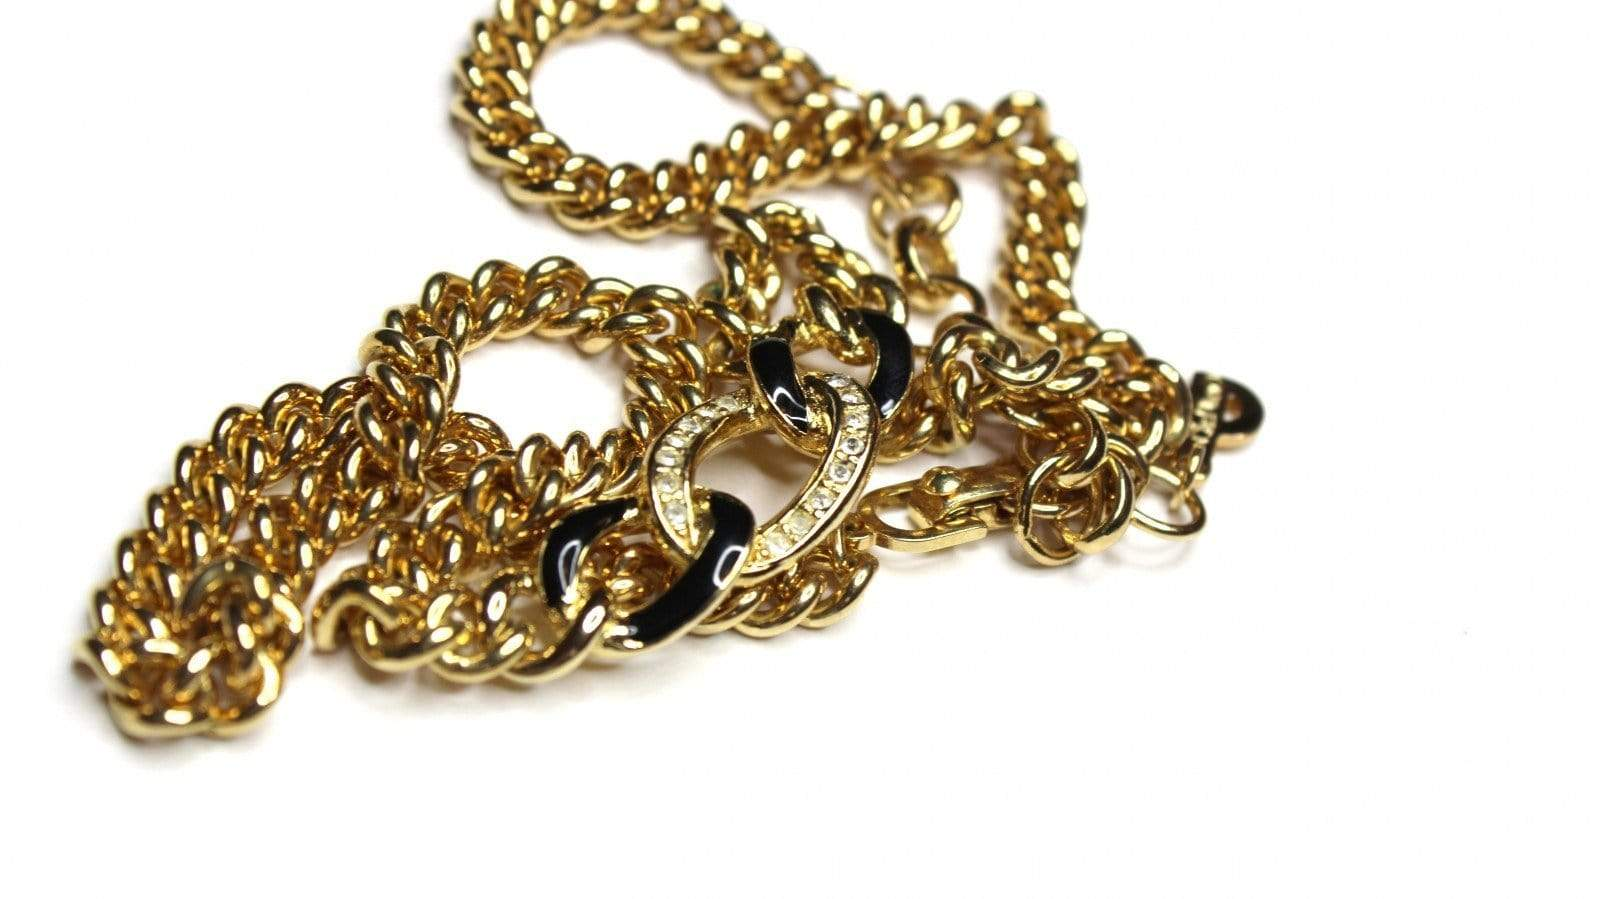 Gold Dior Necklace with Black Enamel and Crystal Accents RSTKD Vintage